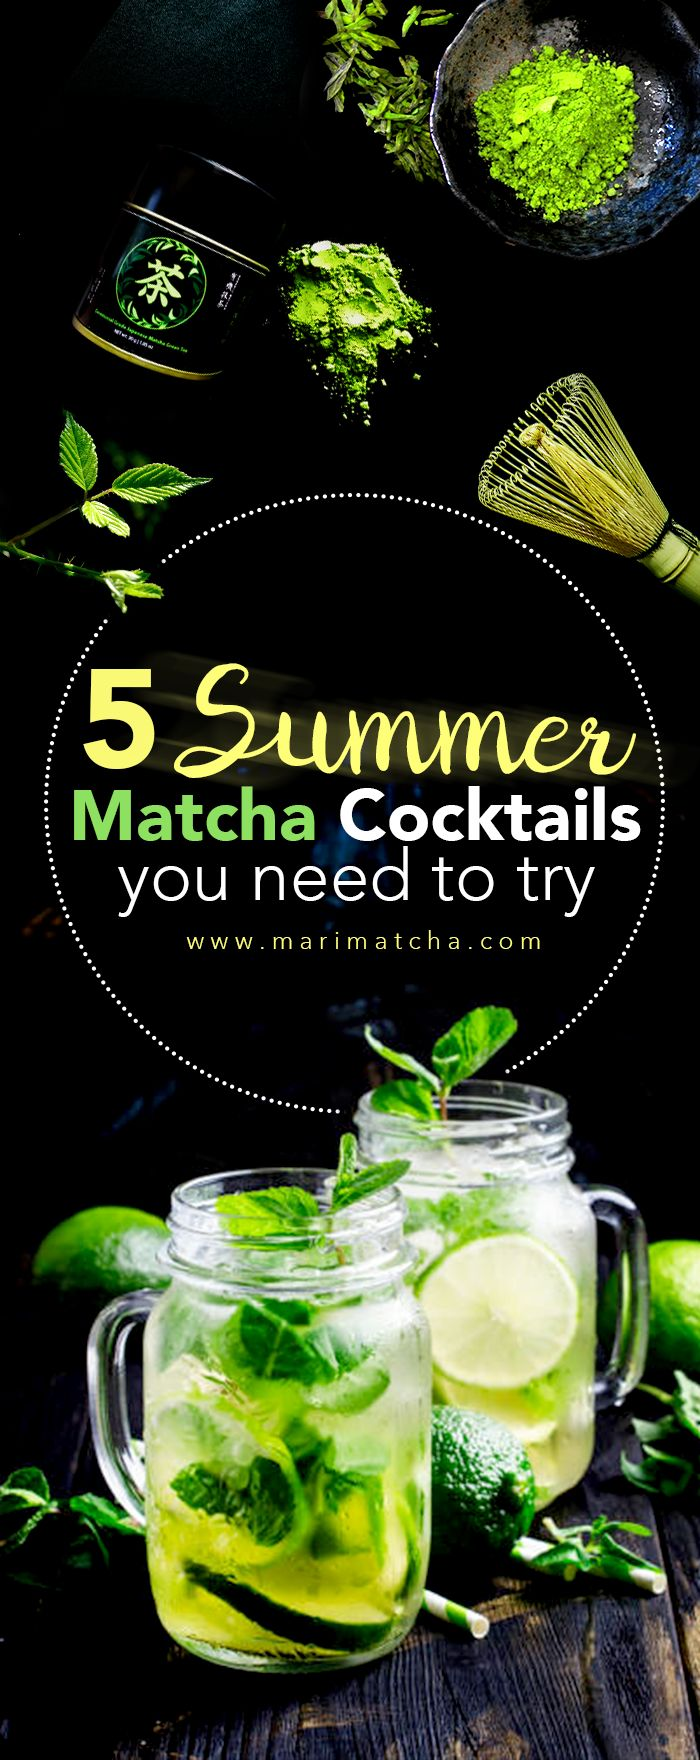 Summer is not over yet! Dive into the refreshing world of Matcha drinks with our new post about the 5 best Matcha cocktails out there! Read more at ---> www.marimatcha.com #matcha #matchagreentea #green tea #tea #drinks #cocktails #summer #antioxidants #detox #healthy #teatime #marimatchatea